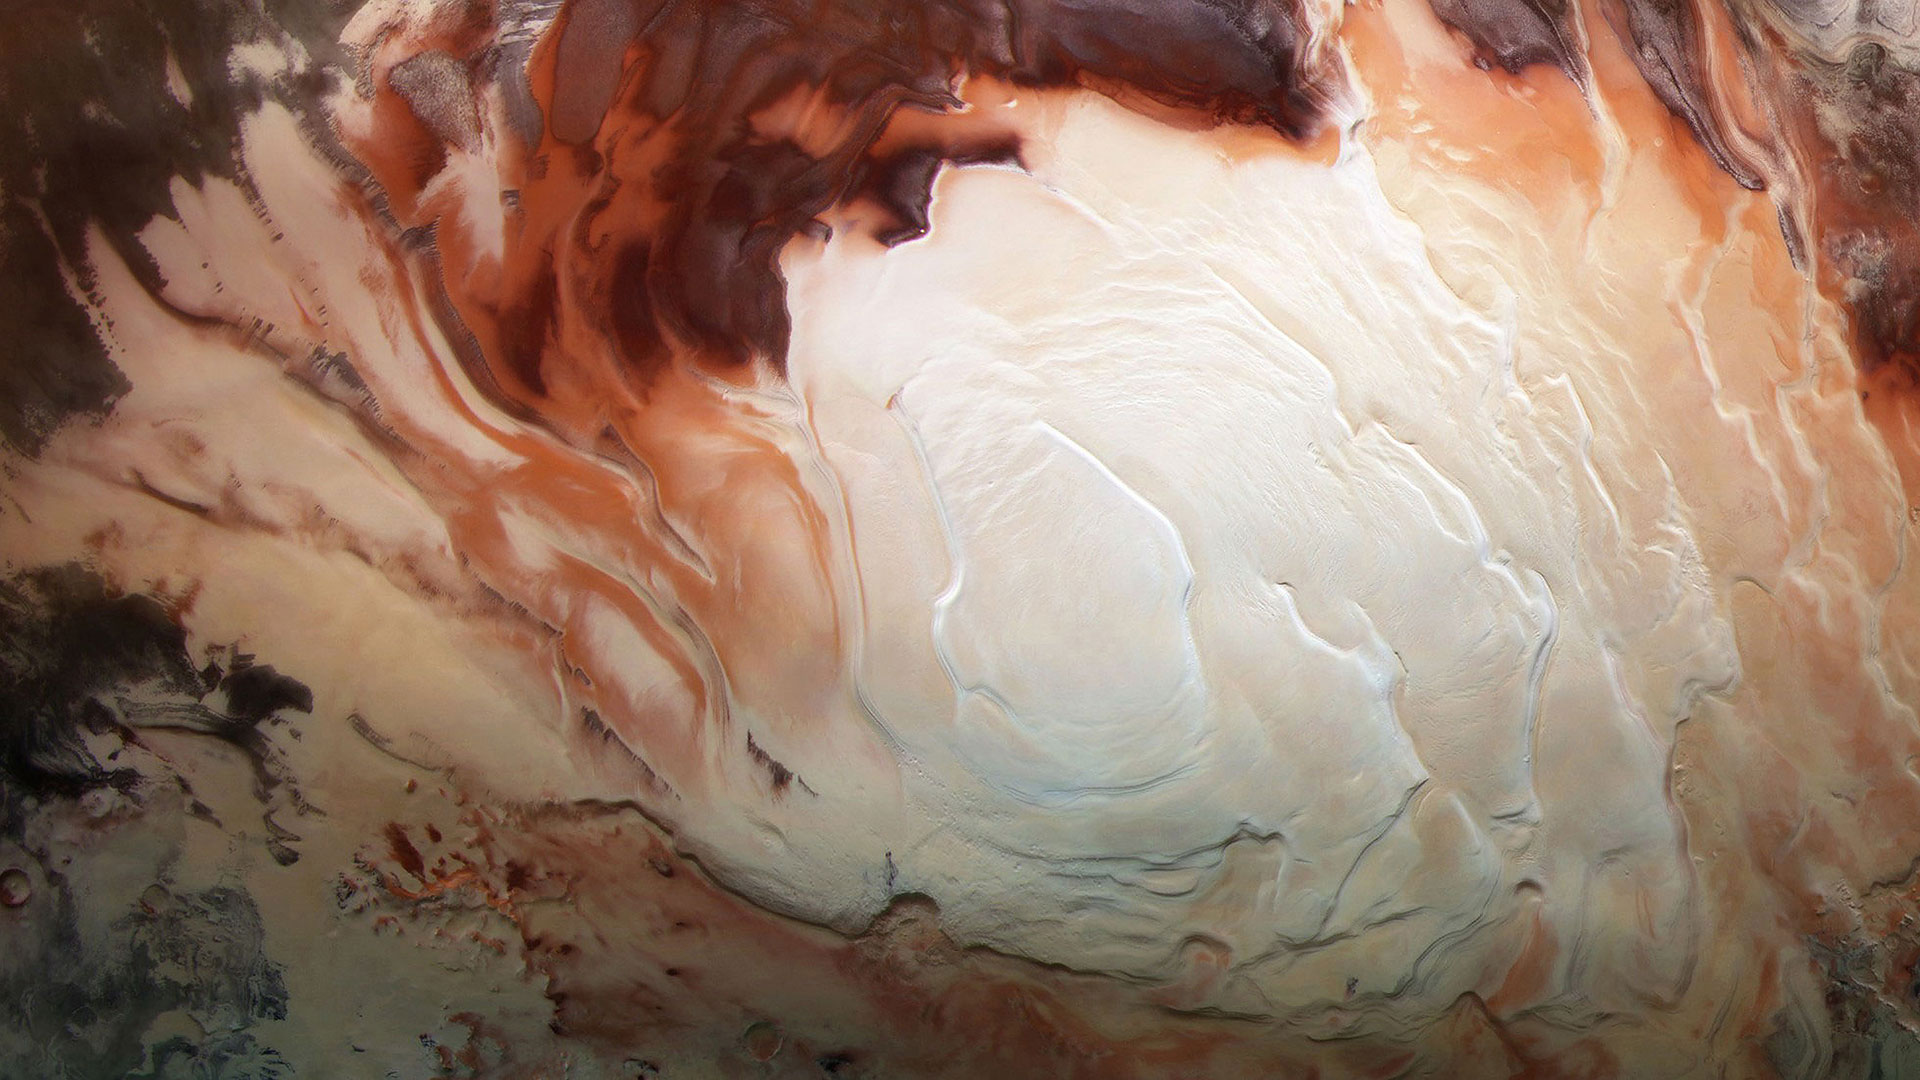 Mars Express image of the icy cap at Mars' south pole (© ESA/DLR/FU Berlin/Bill Dunford)(Bing United States)